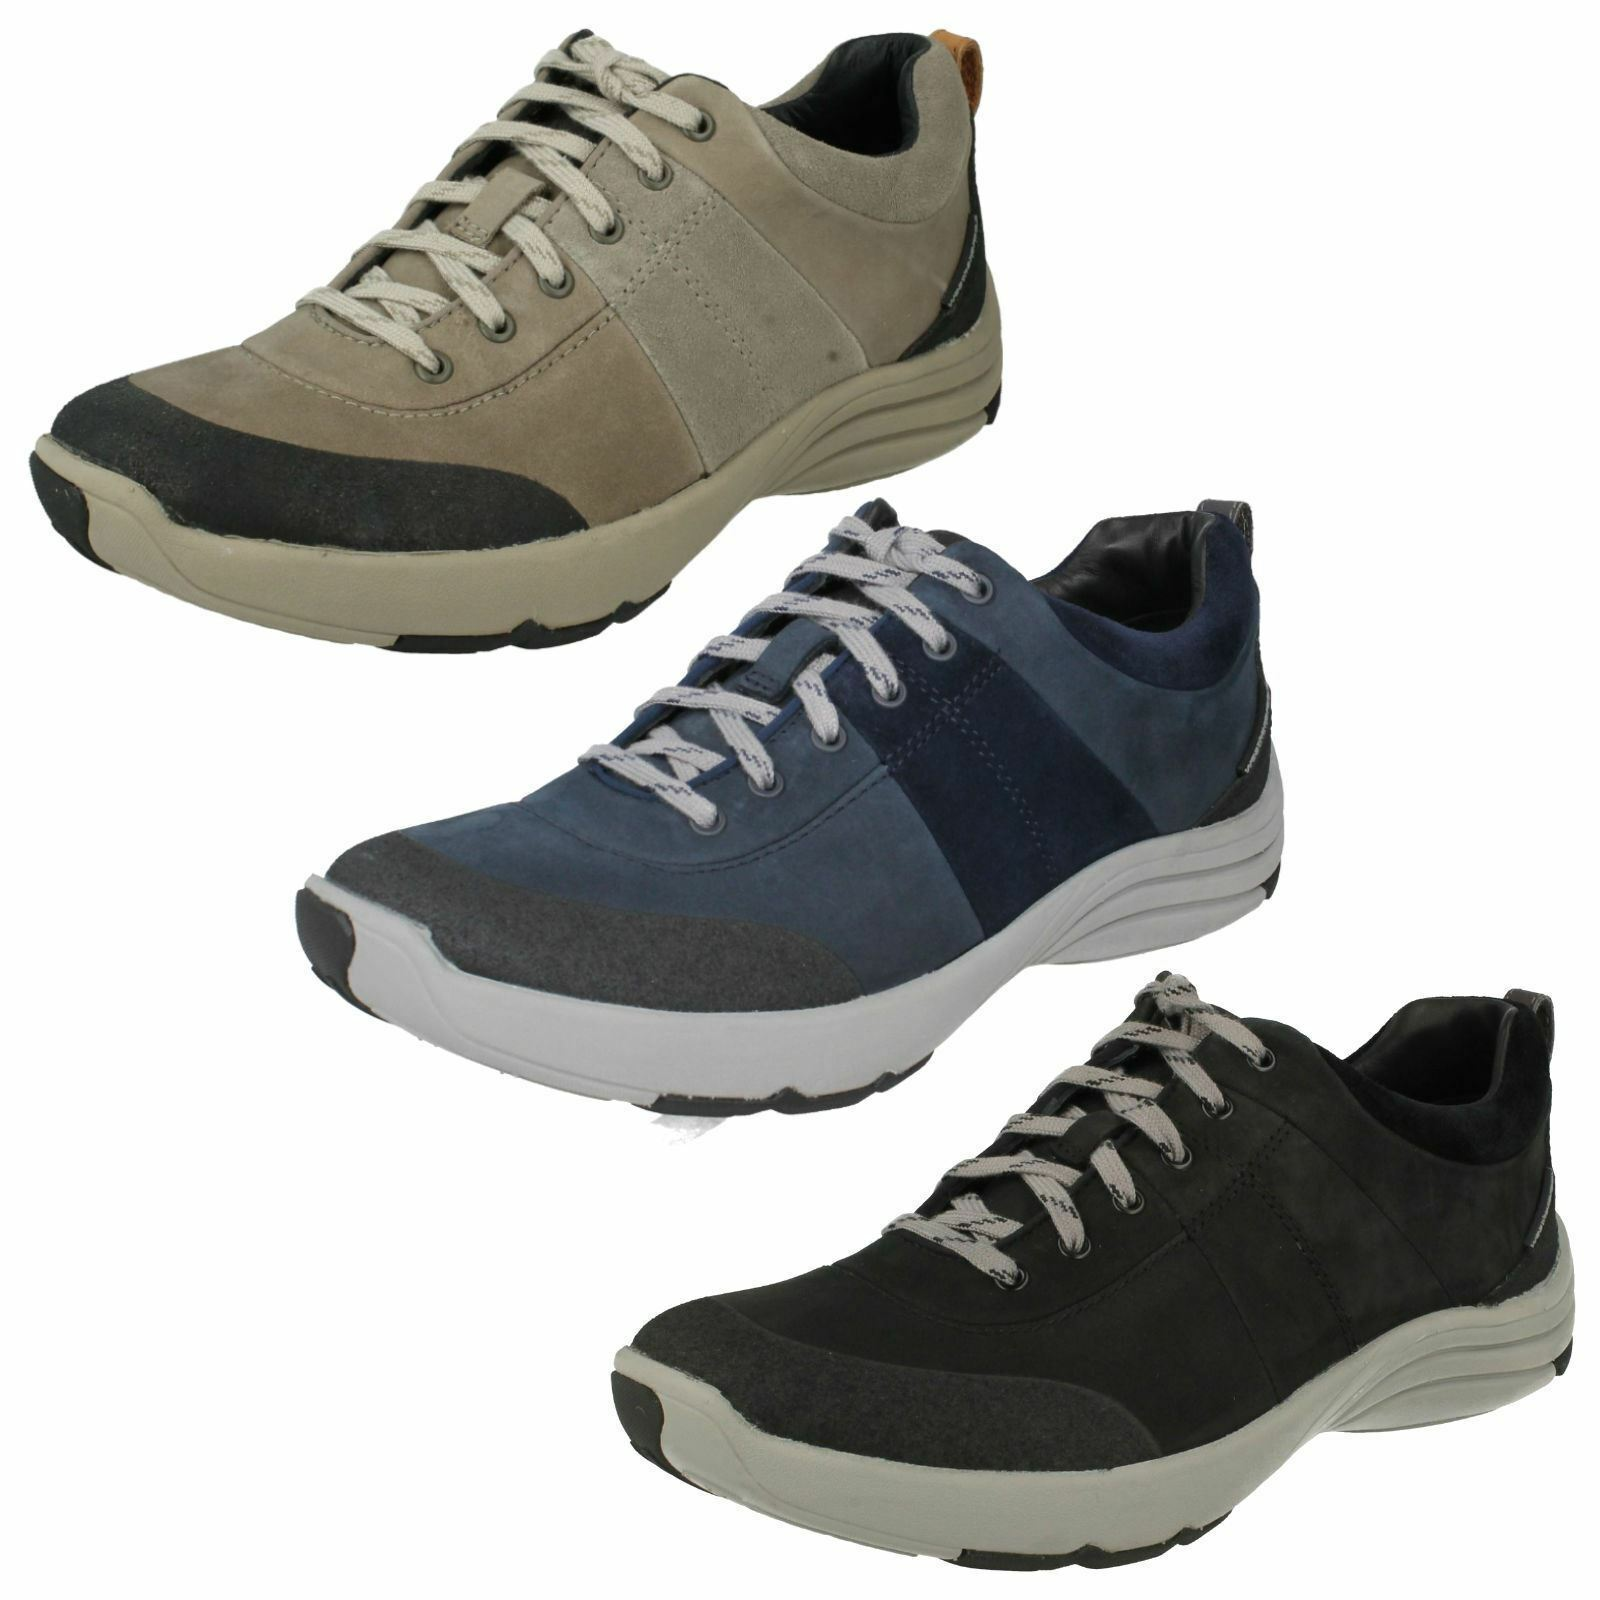 Ladies Clarks Leather Lace up Trainer